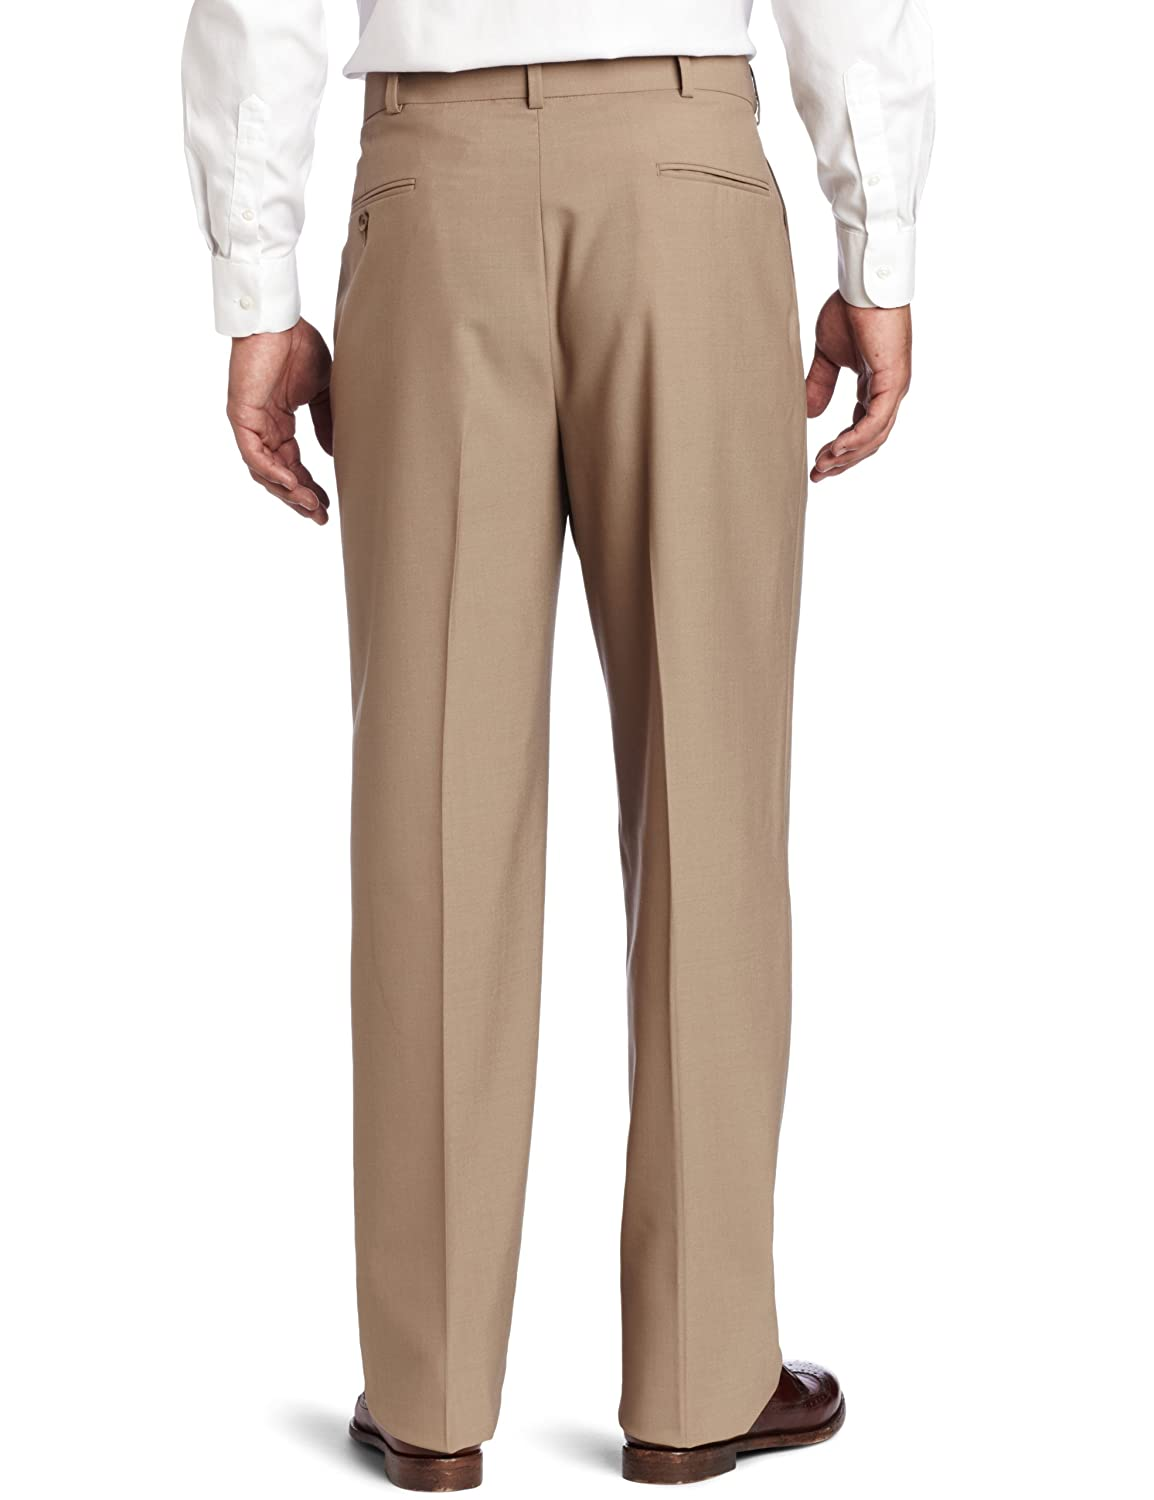 Austin Reed Mens Classic Dress Pant Tan 40 Regular Austin Reed Men S Tailored R63 270144 Ret Pants Clothing